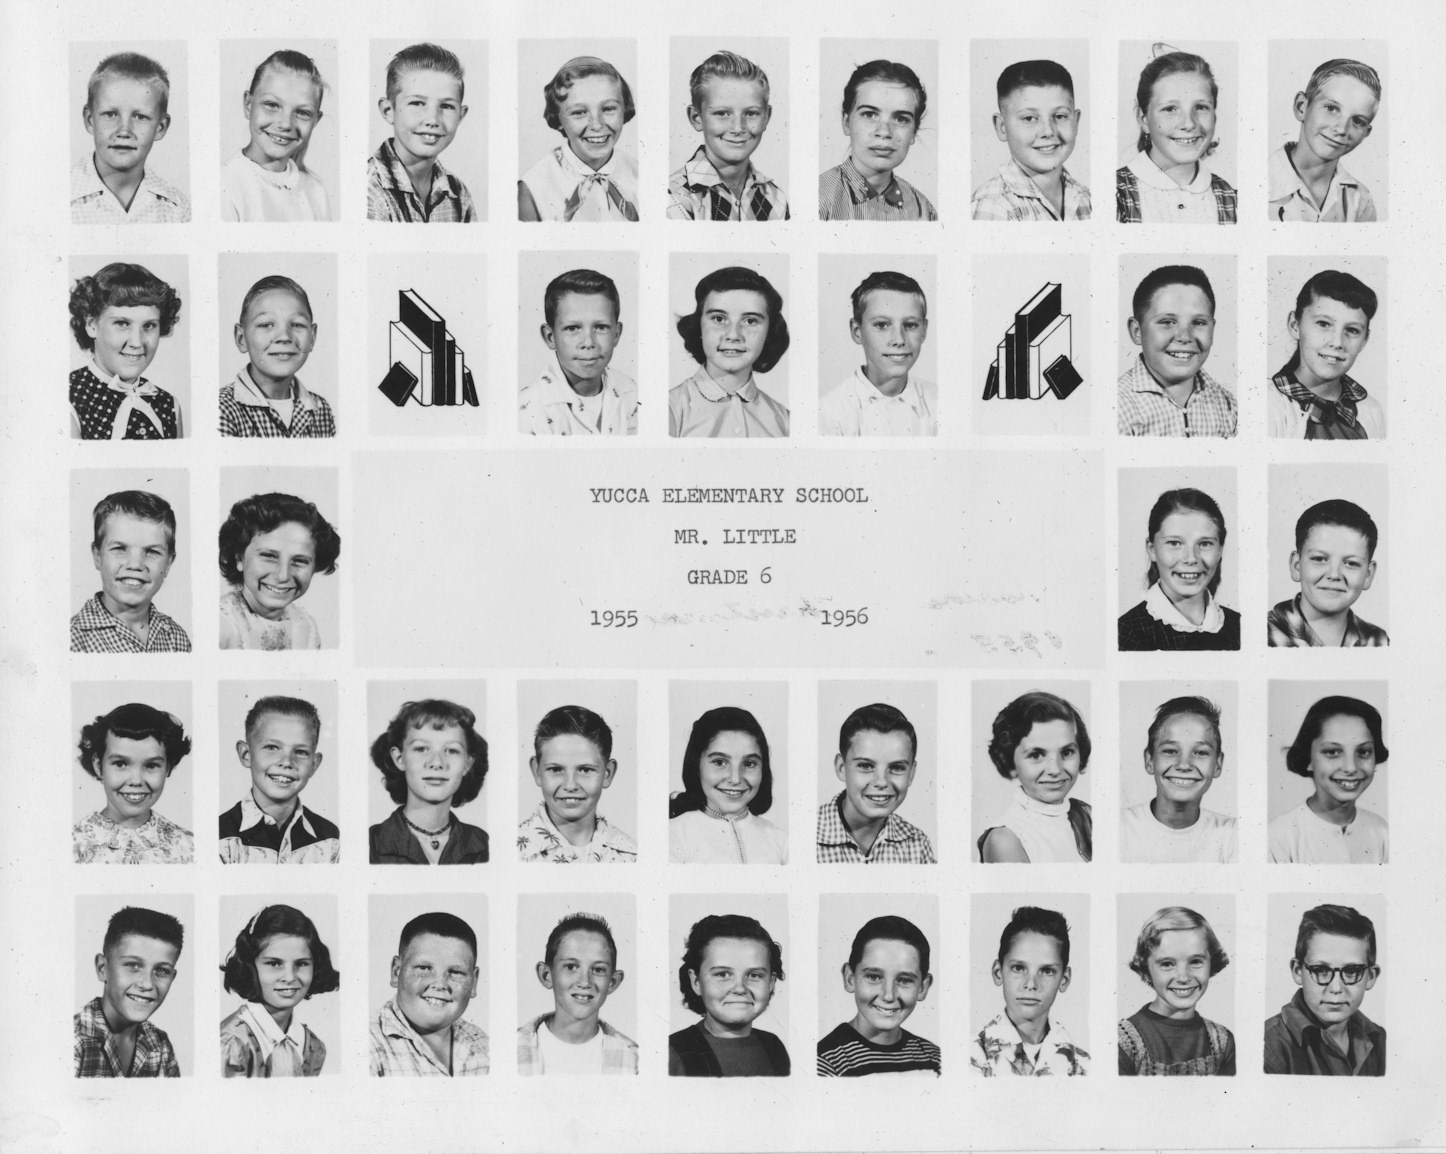 Yucca School, Sixth Grade, 1955-6, Mr. Little